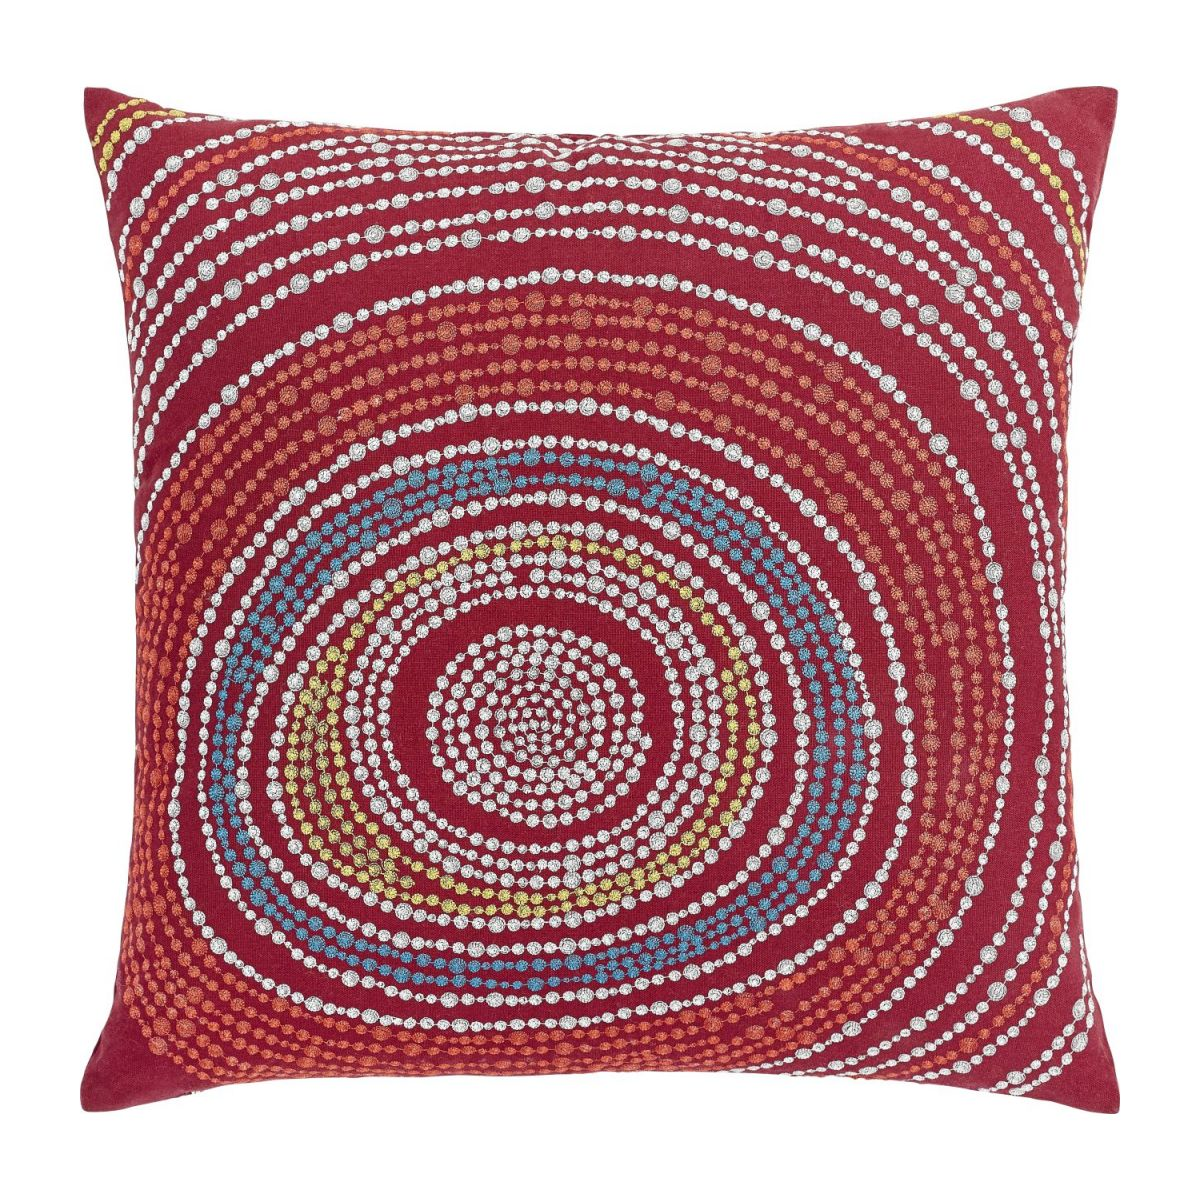 Cushion 45x45cm, red with patterns n°1